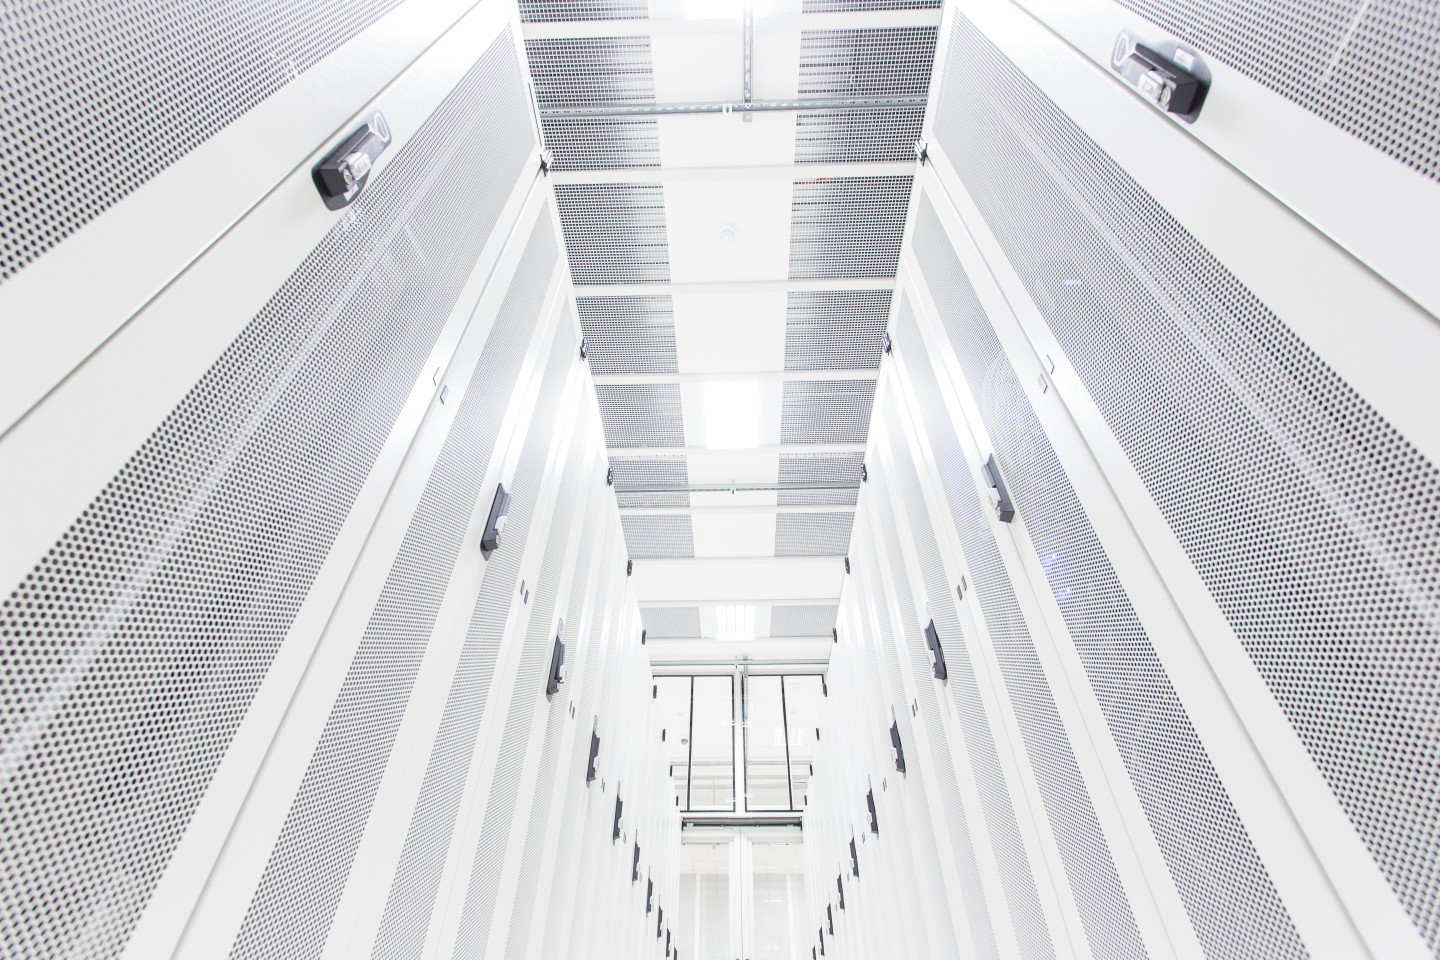 The role of High Density in High Performance Computing